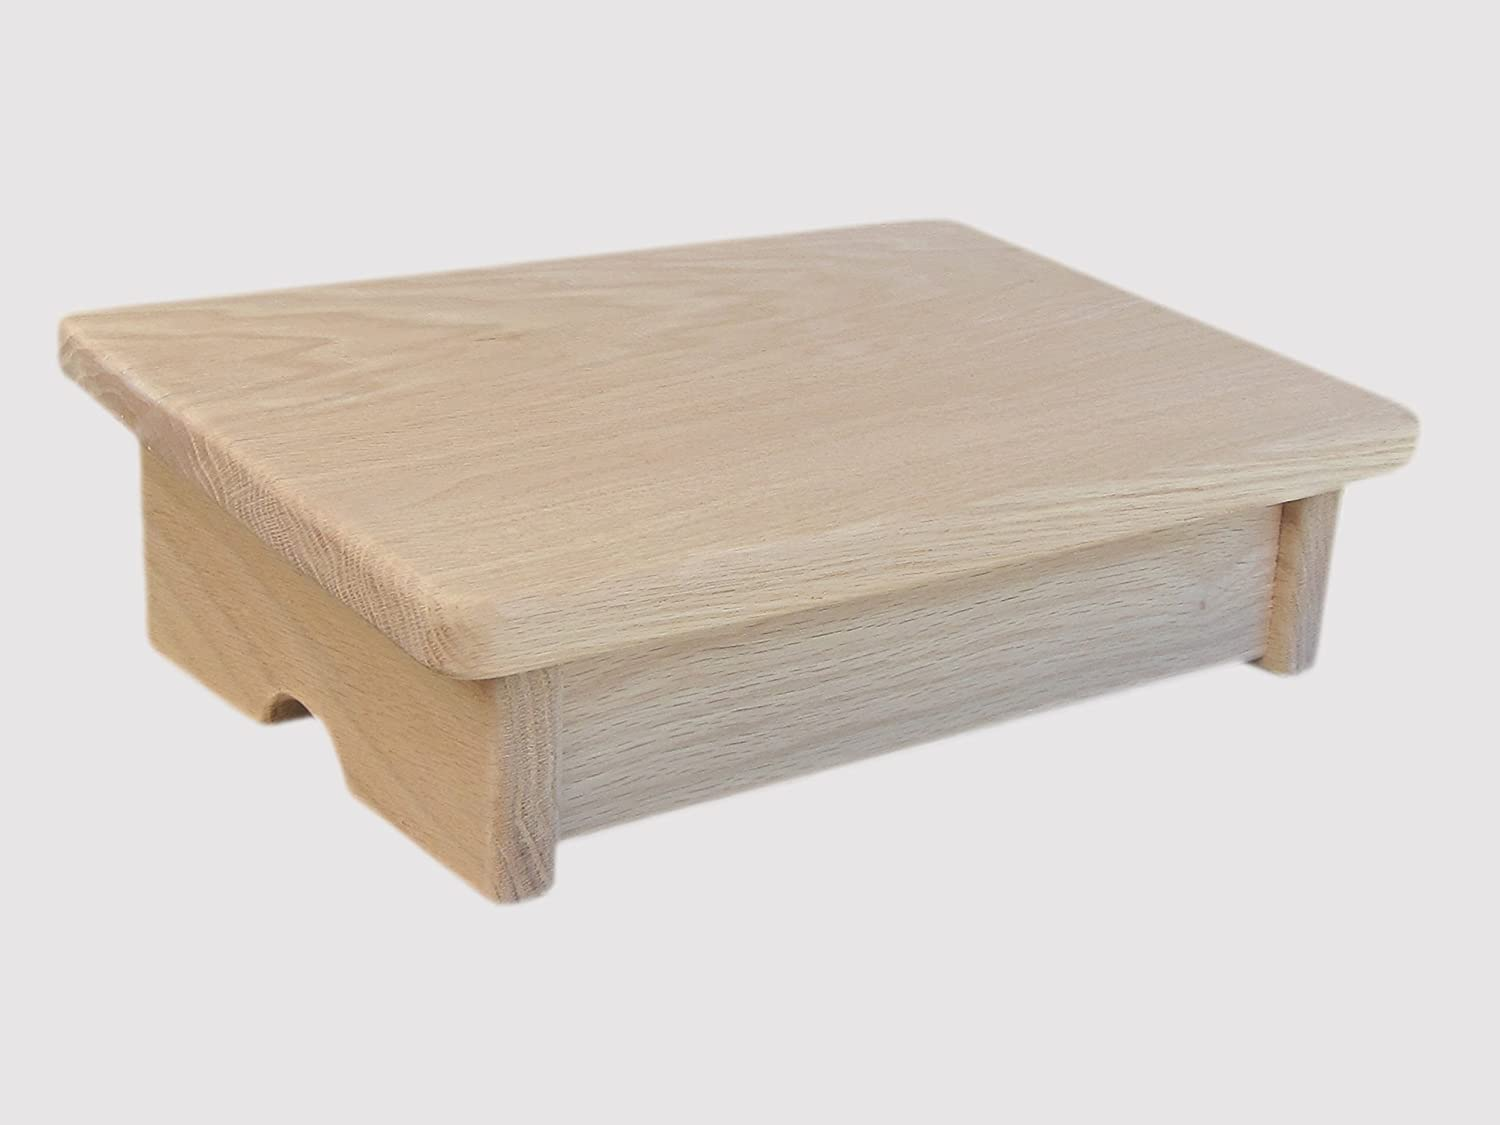 """KR Ideas Comfort Foot Stool, 4"""" Tall, Oak, Unfinished (Made in The USA)"""